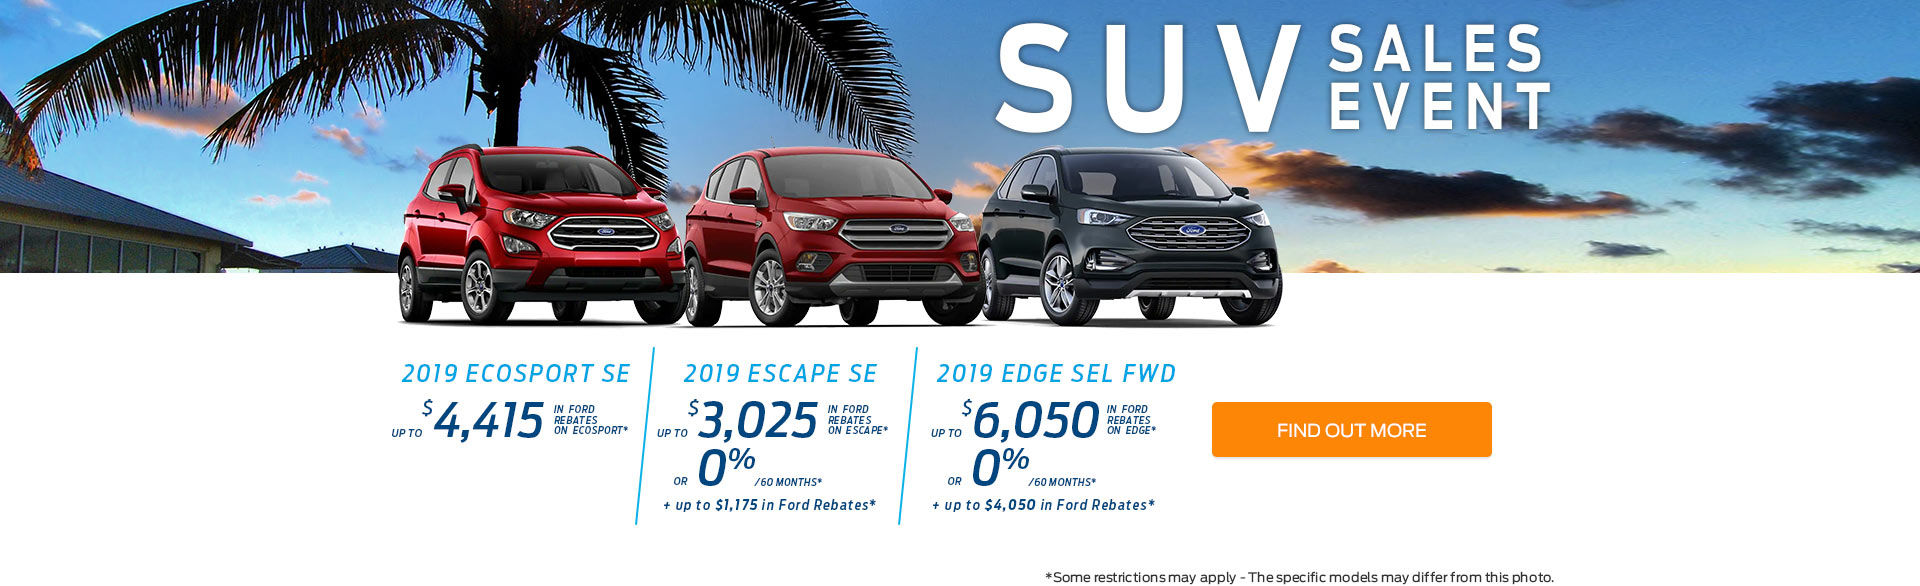 SUV Sales Event